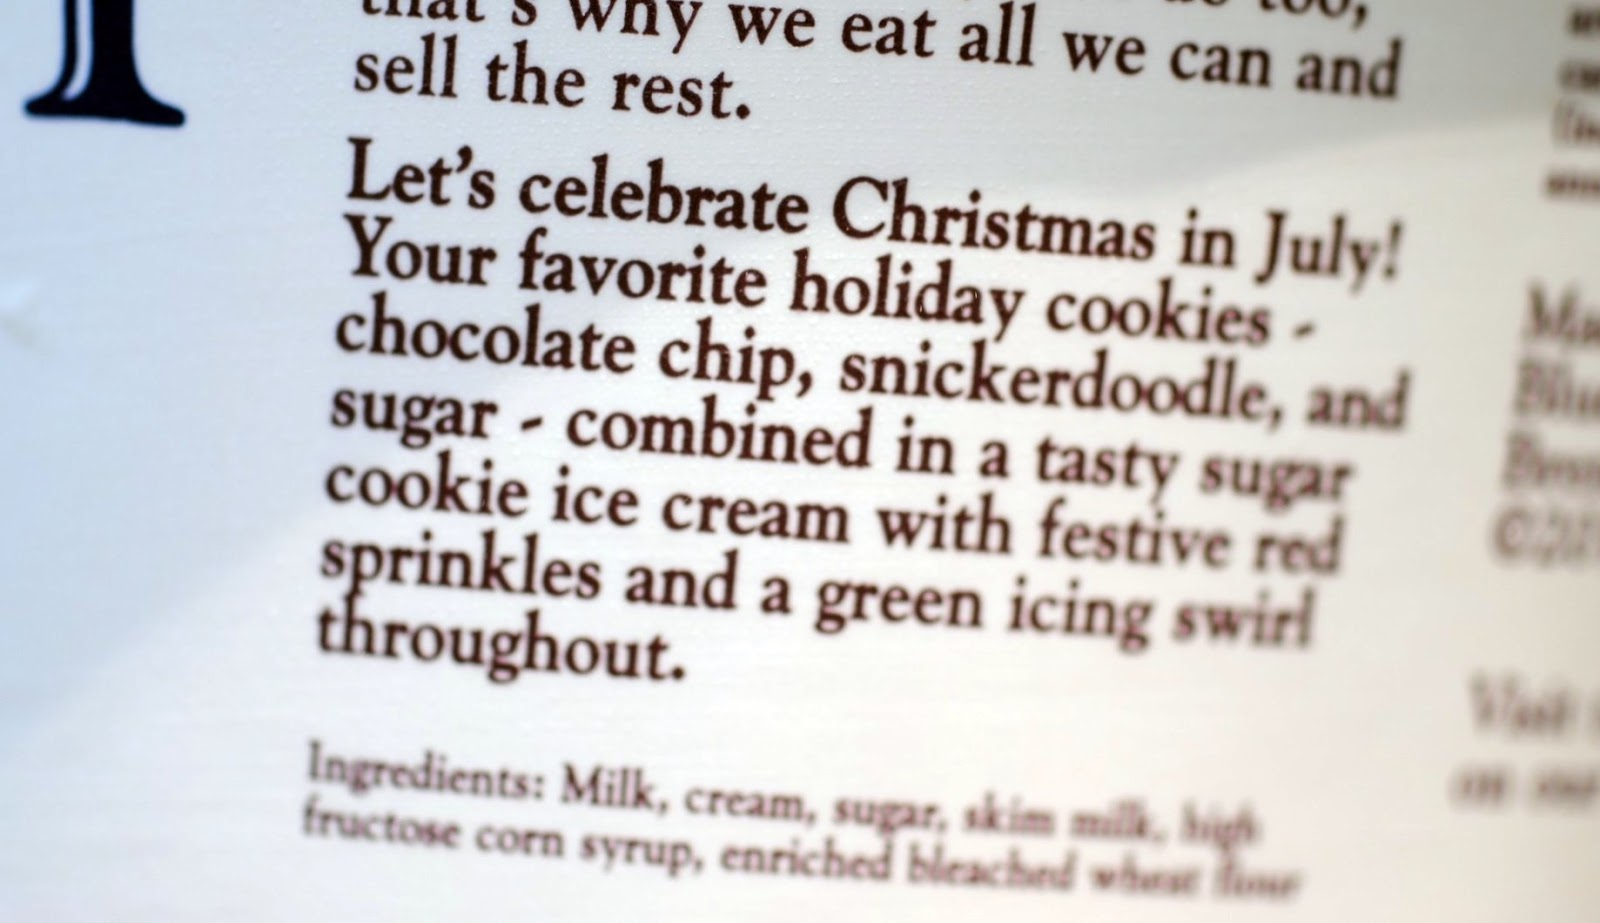 food and ice cream recipes: REVIEW: Blue Bell Christmas Cookies In July (Holiday Favorite ...